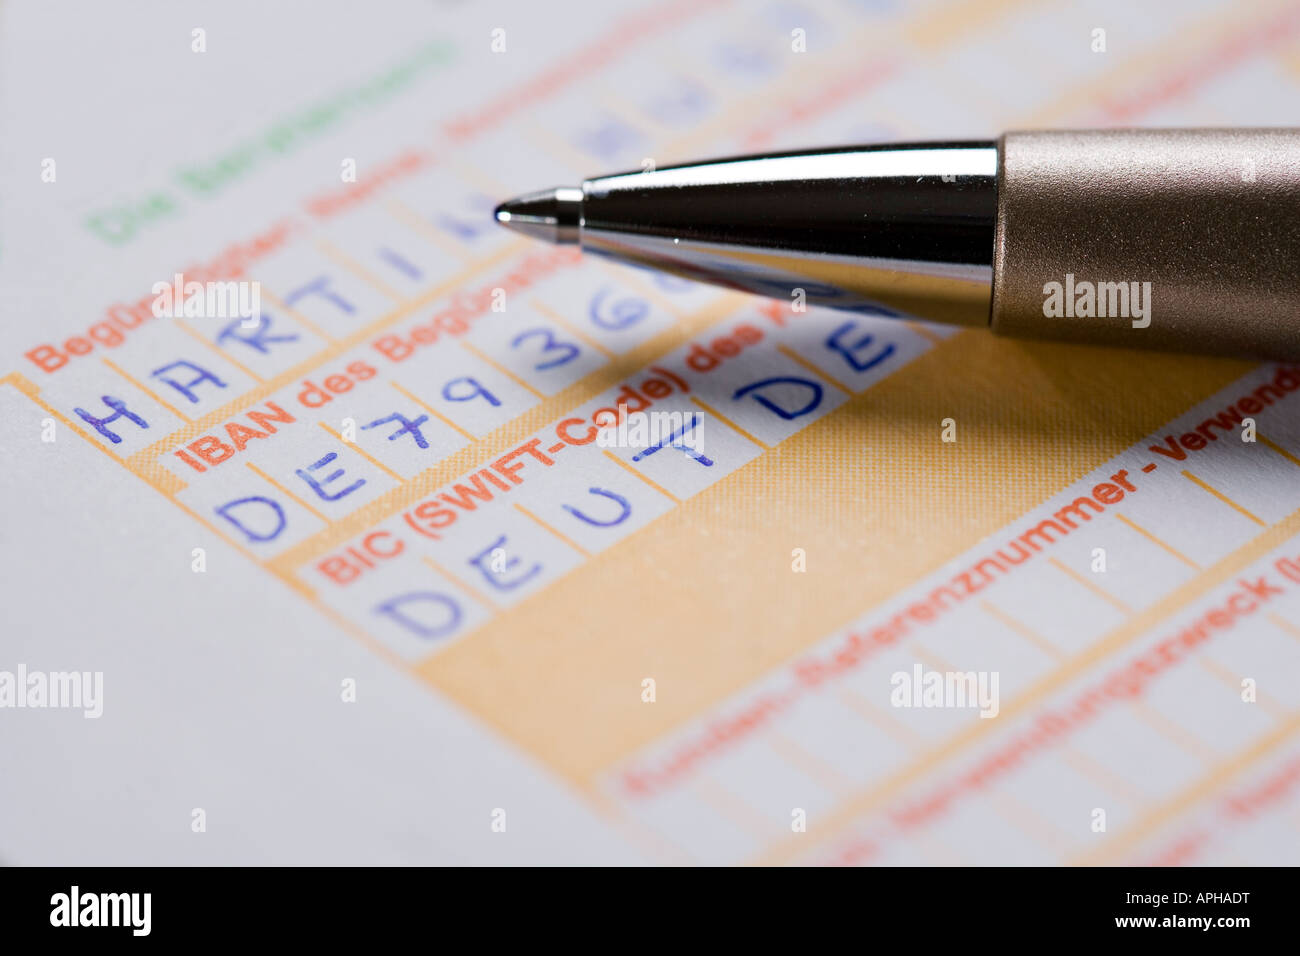 Swift Code Stockfotos & Swift Code Bilder - Alamy